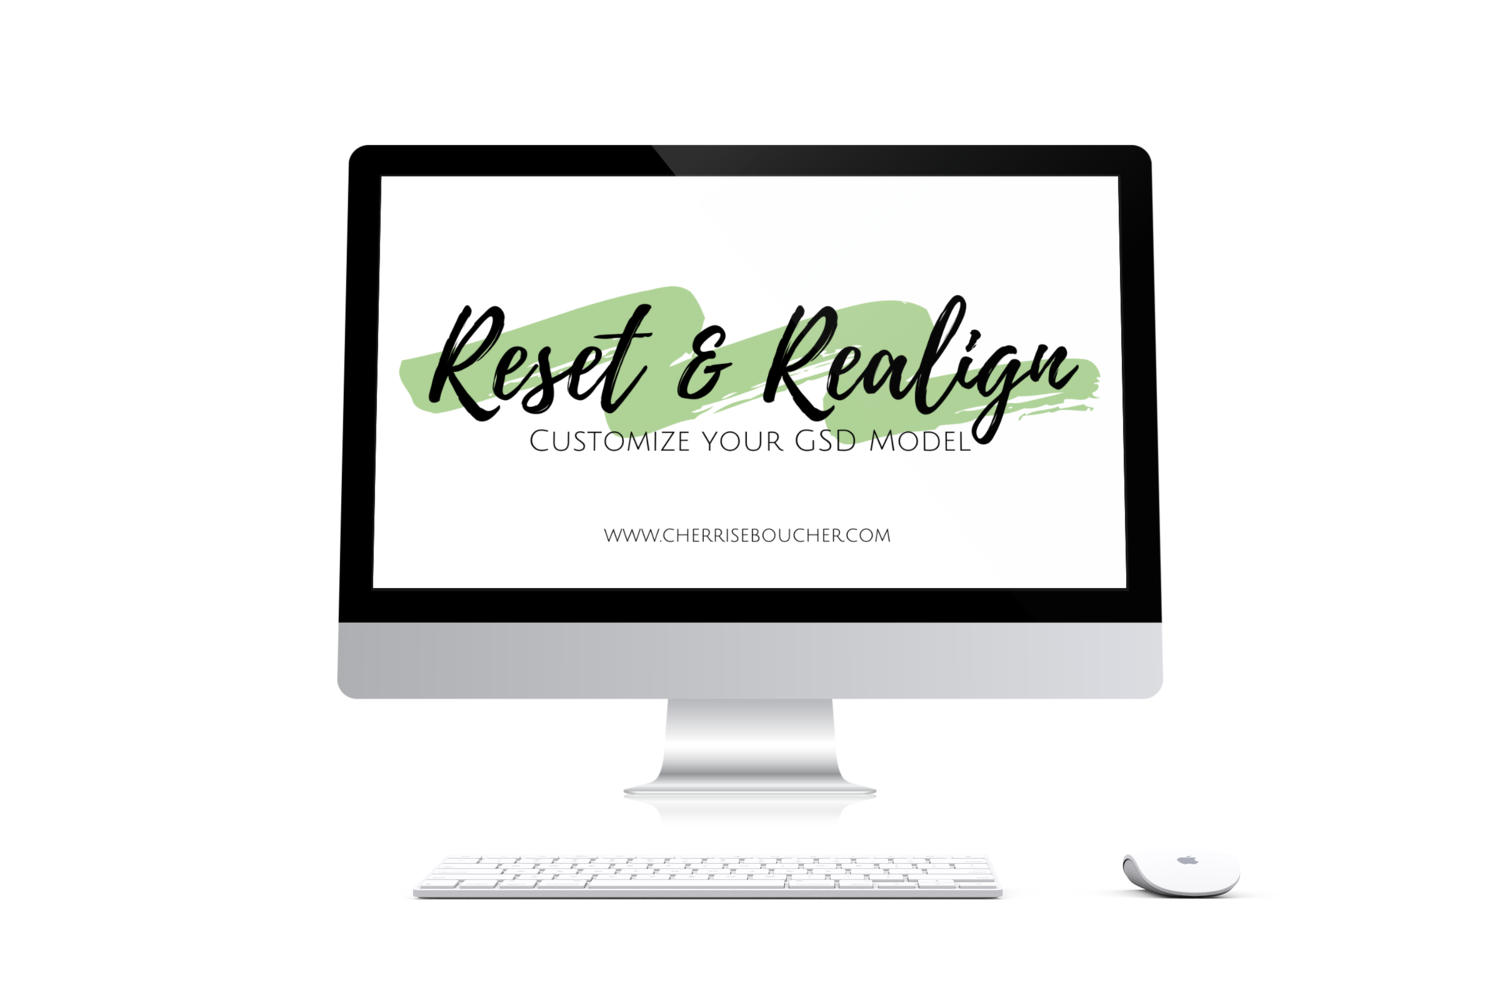 Reset & Realign  - Customize Your GSD Model Kit